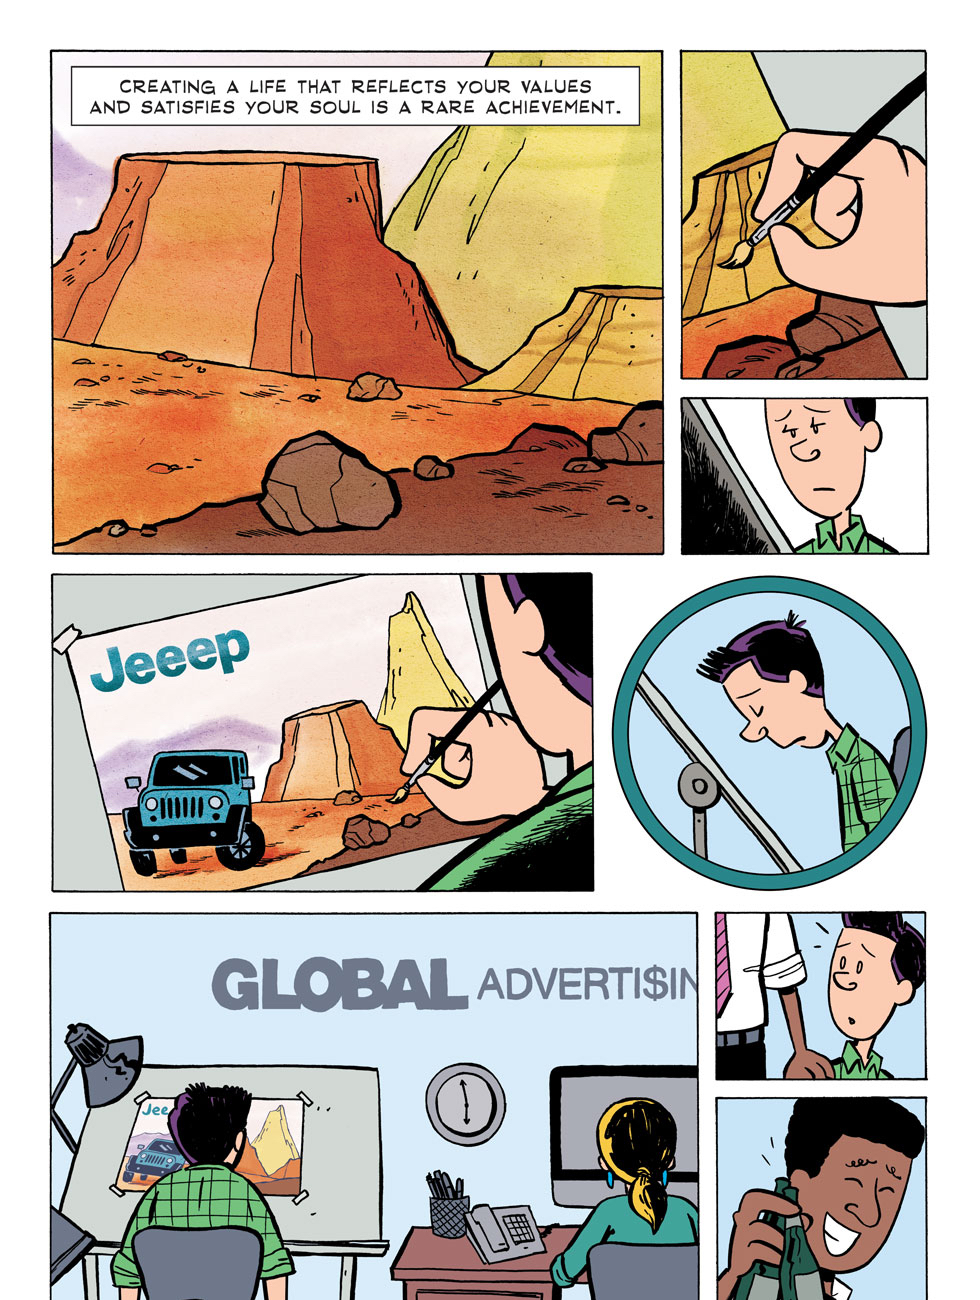 Zen Pencils: Bill Watterson